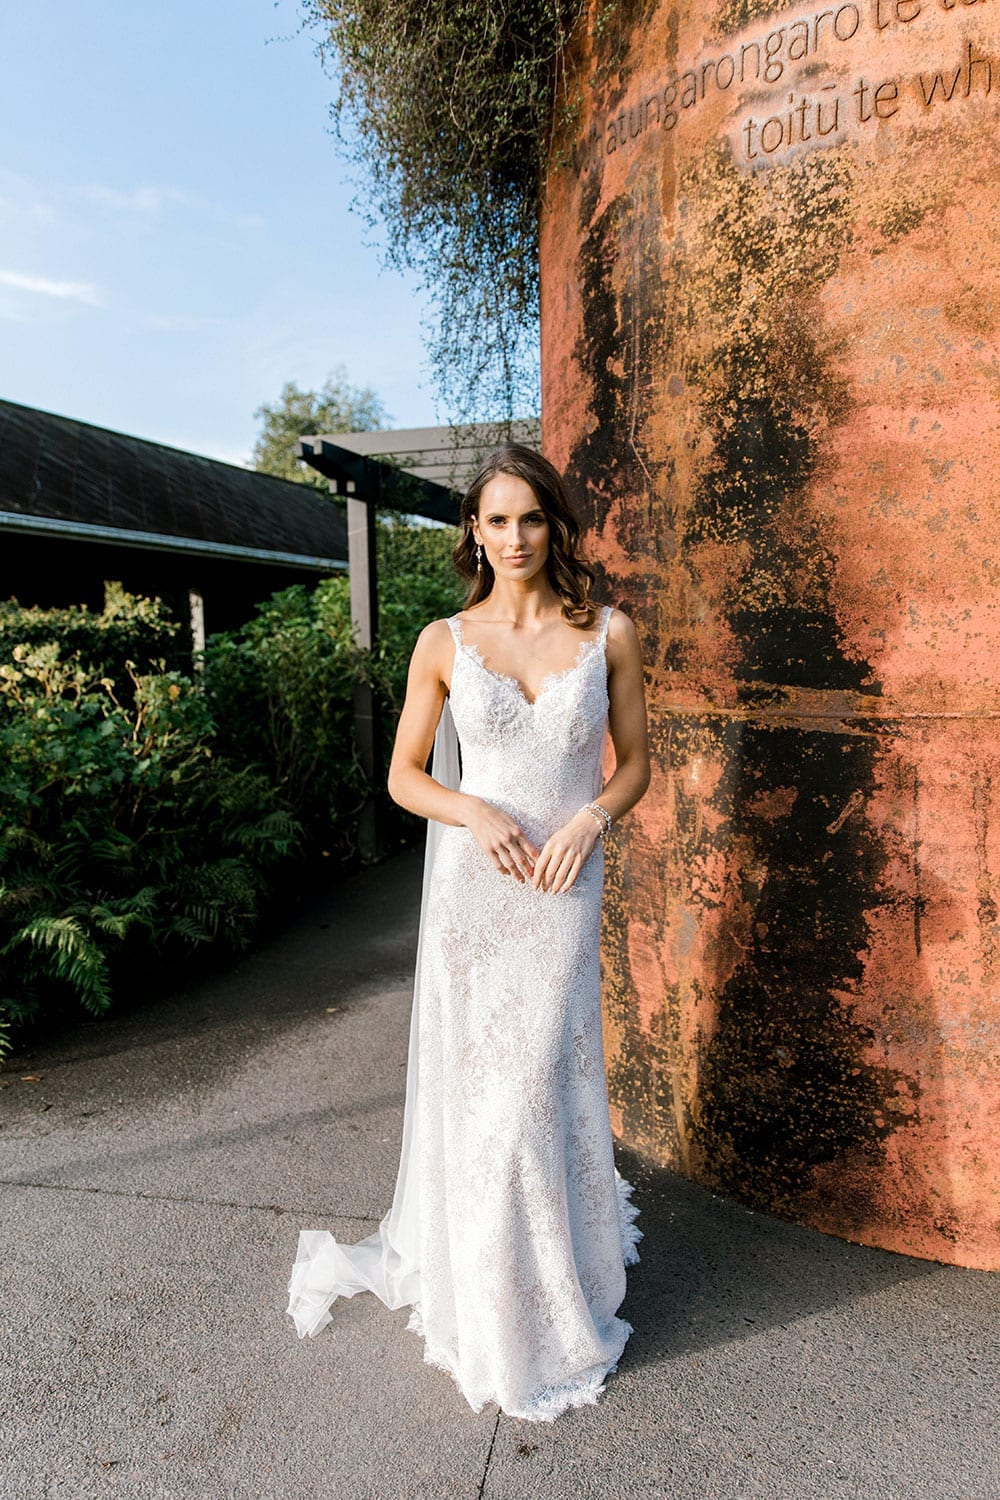 Model wearing Vinka Design Arabella Wedding Dress, a Beaded Lace Wedding Gown with Cape in Hamilton Gardens portrait